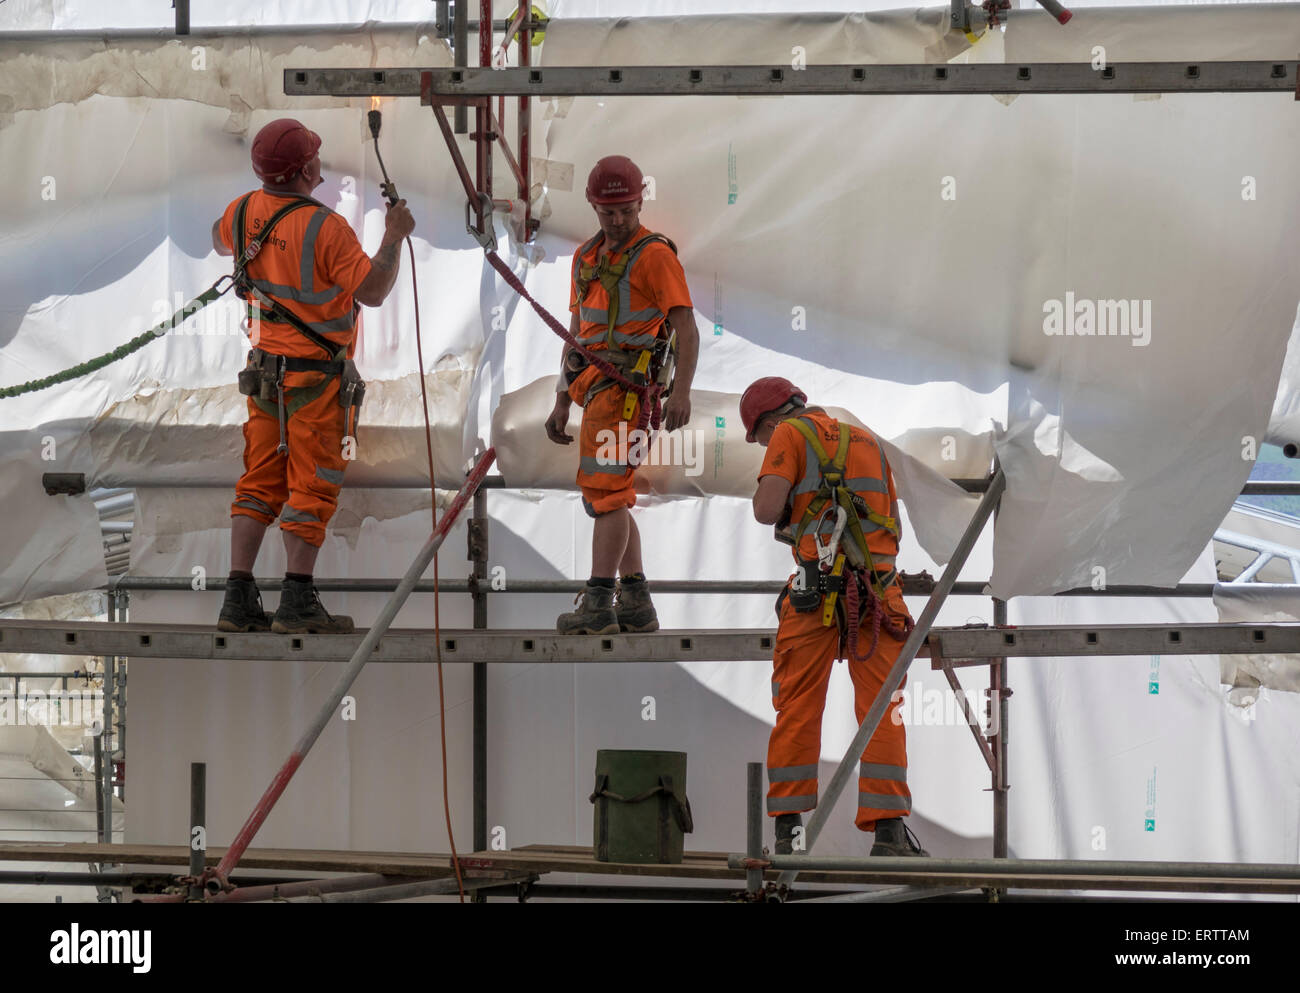 Construction workers erecting scaffolding and encasing it in plastic tent for protection from weather, UK - Stock Image